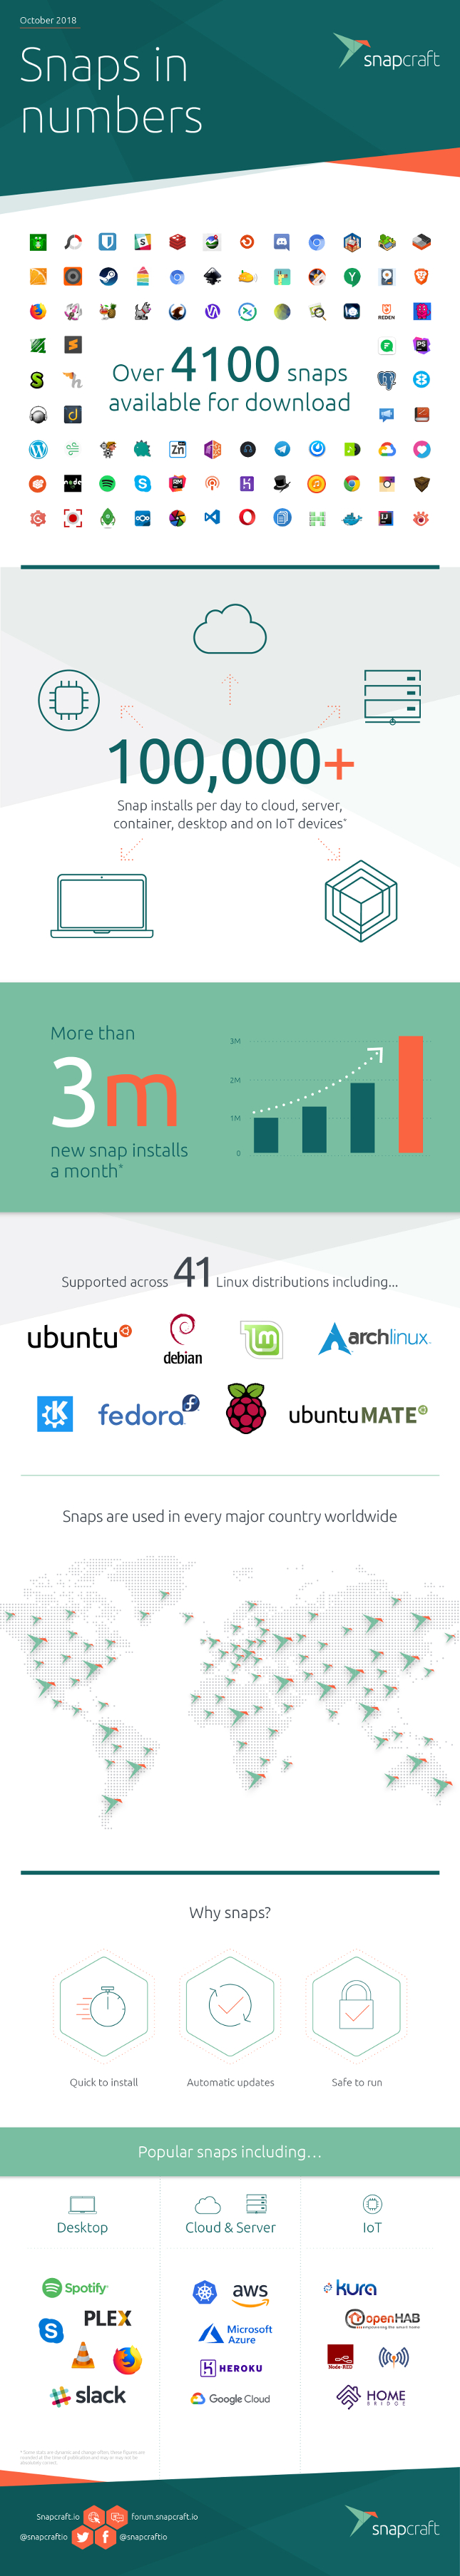 Snaps for Linux are a massive success | BetaNews